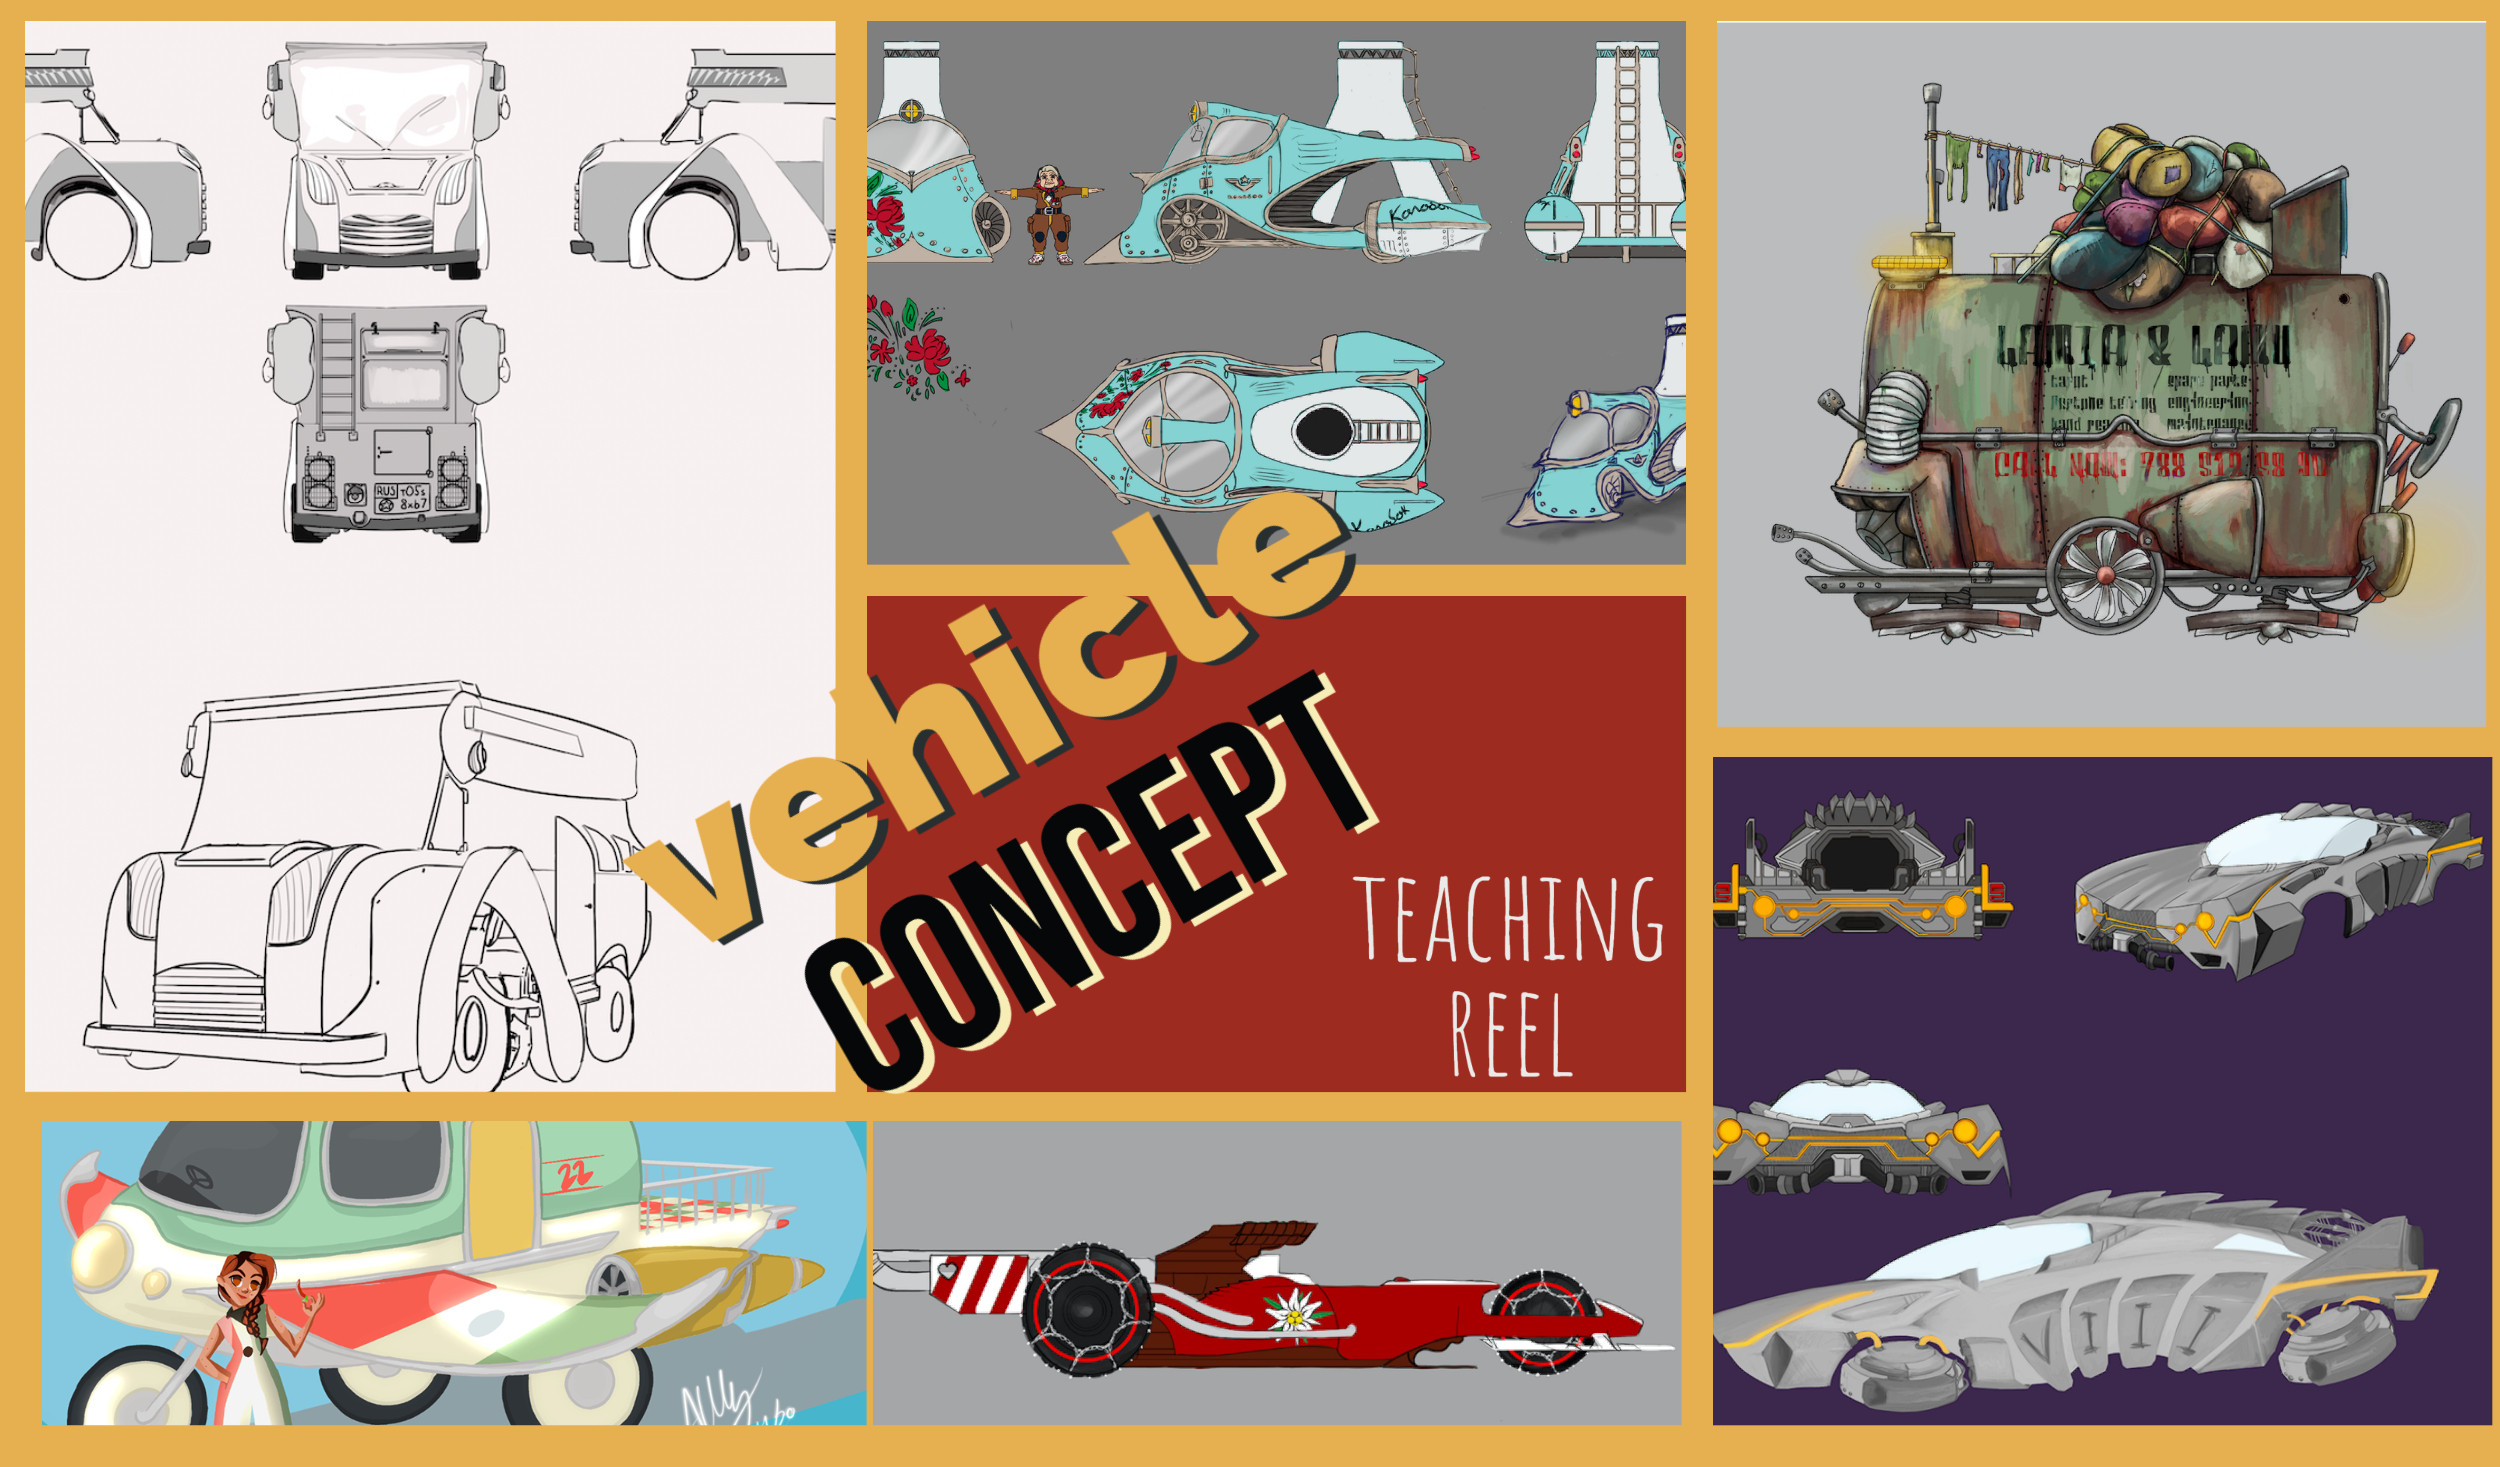 Vehicle Concept, Teaching Reel with Uppsala University from Sweden